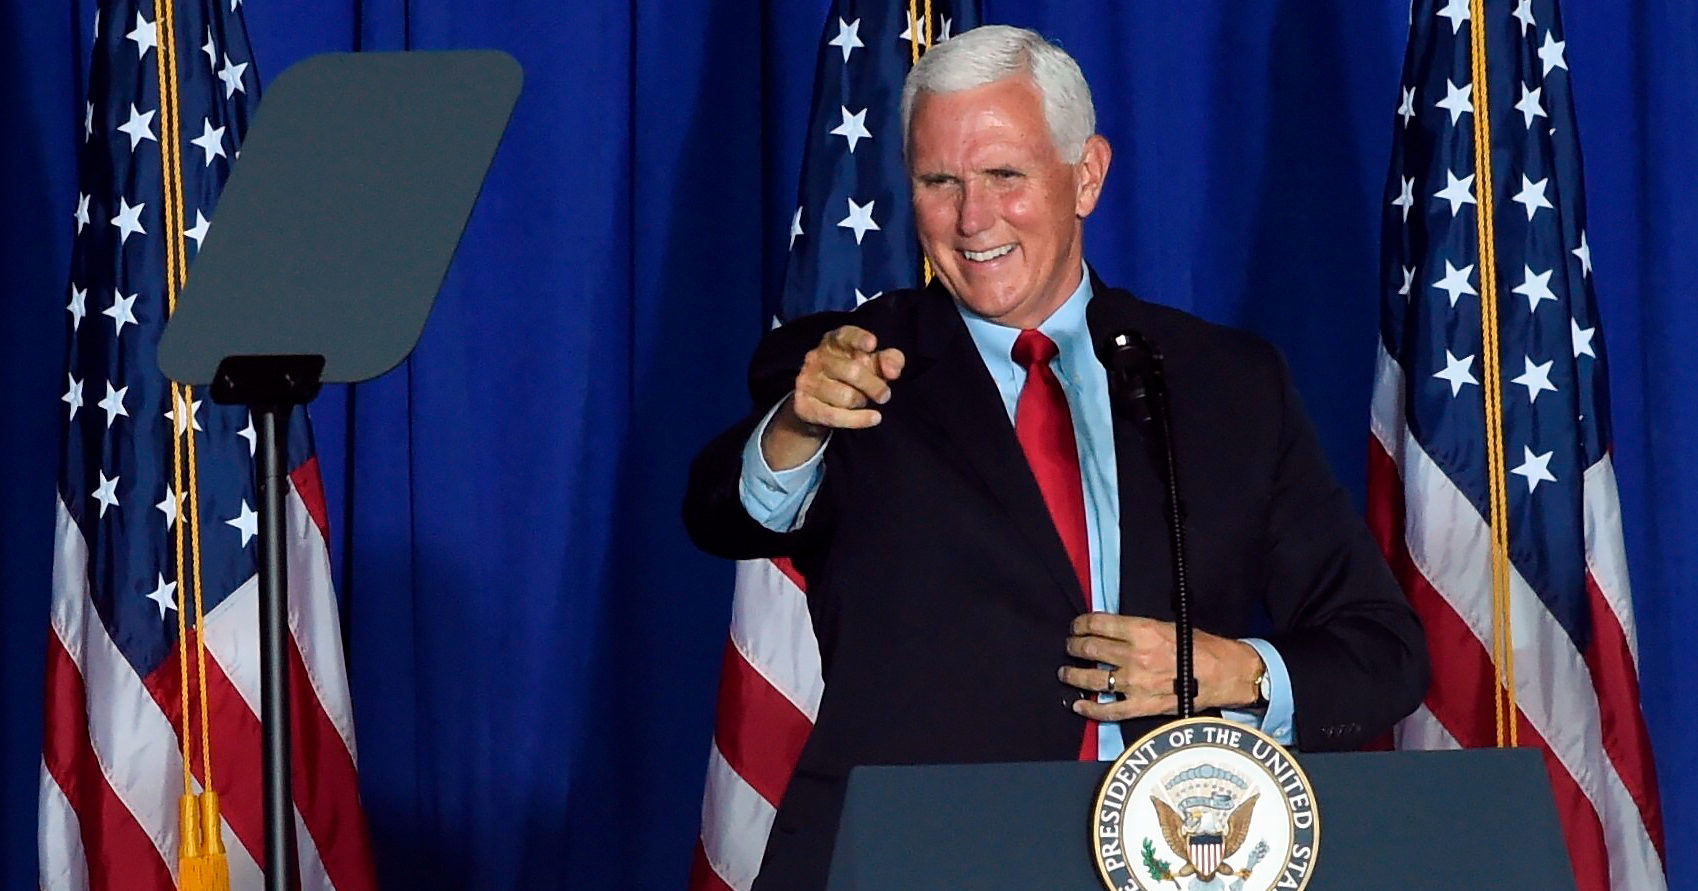 Then-Vice President Mike Pence speaks during a campaign rally at an airplane hangar in Greenville, South Carolina, on Oct. 27.